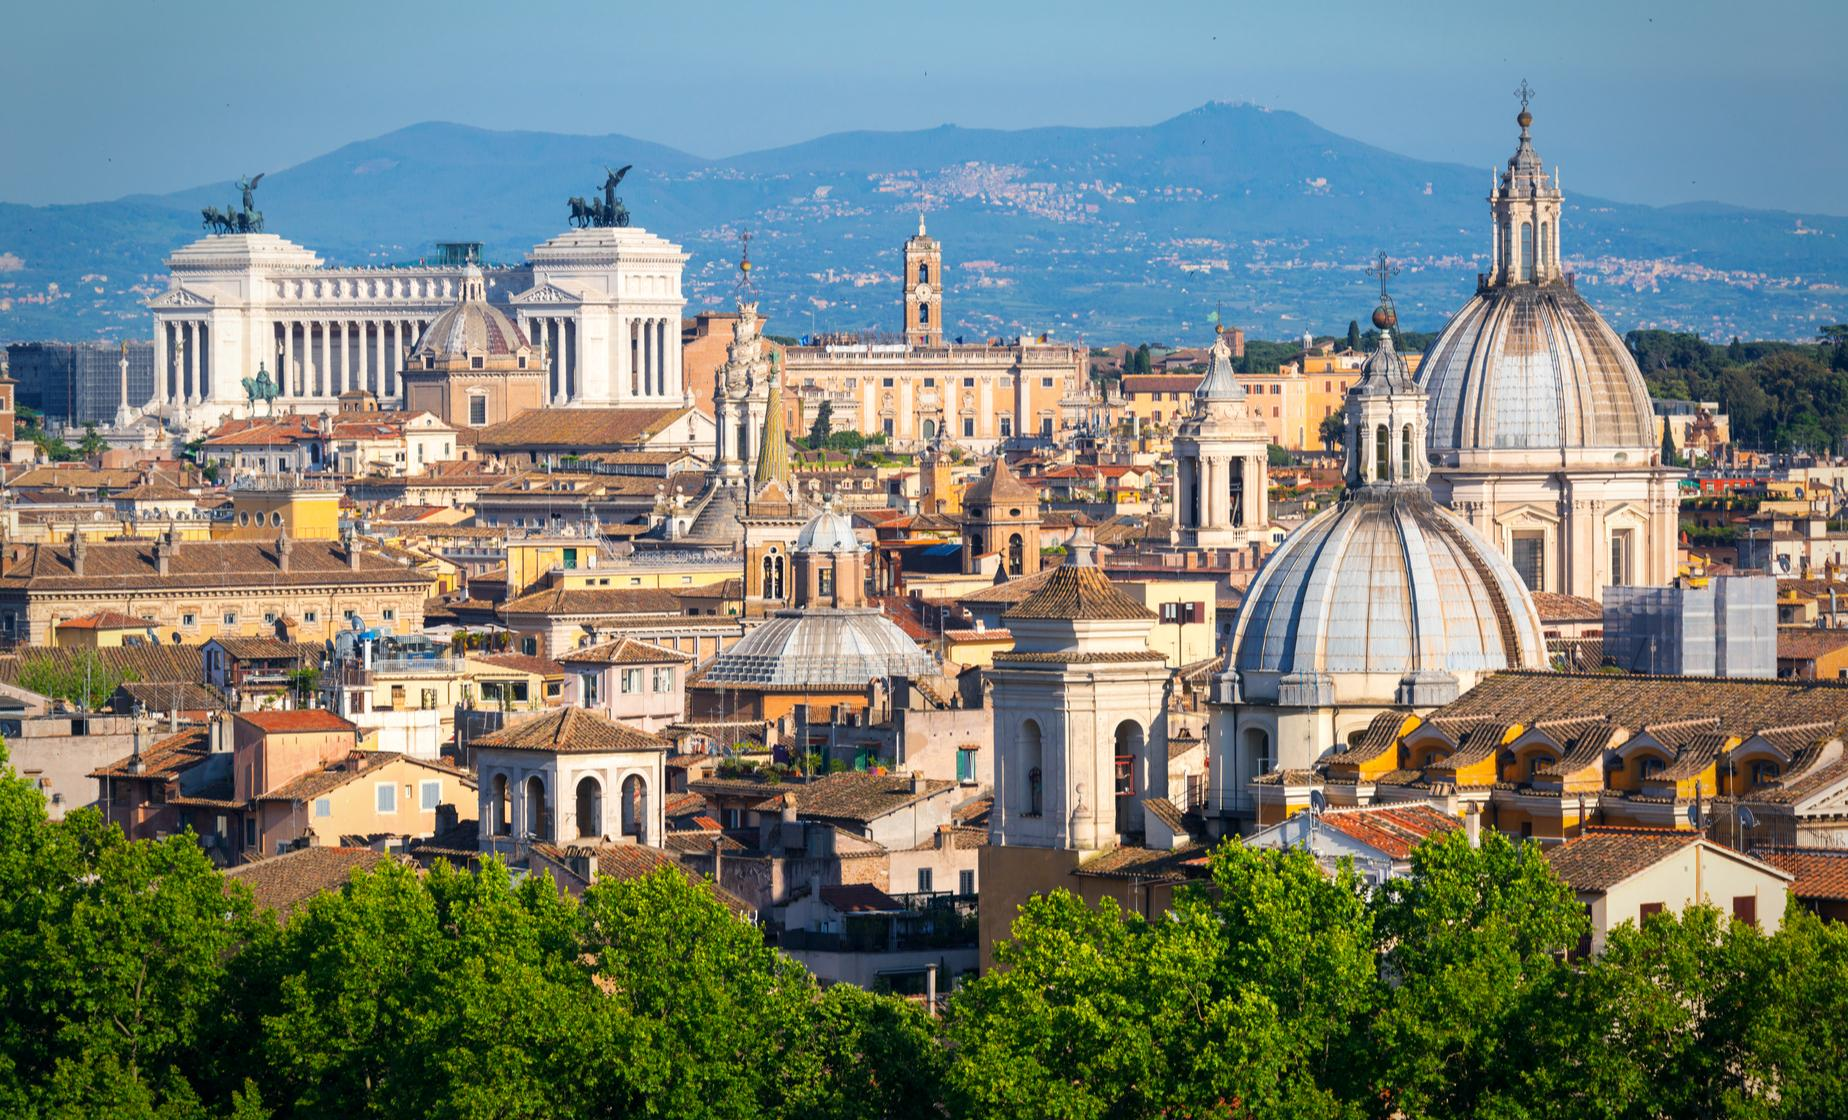 Rome Panorama Cruise Trip through Vatican City & Ancient Rome